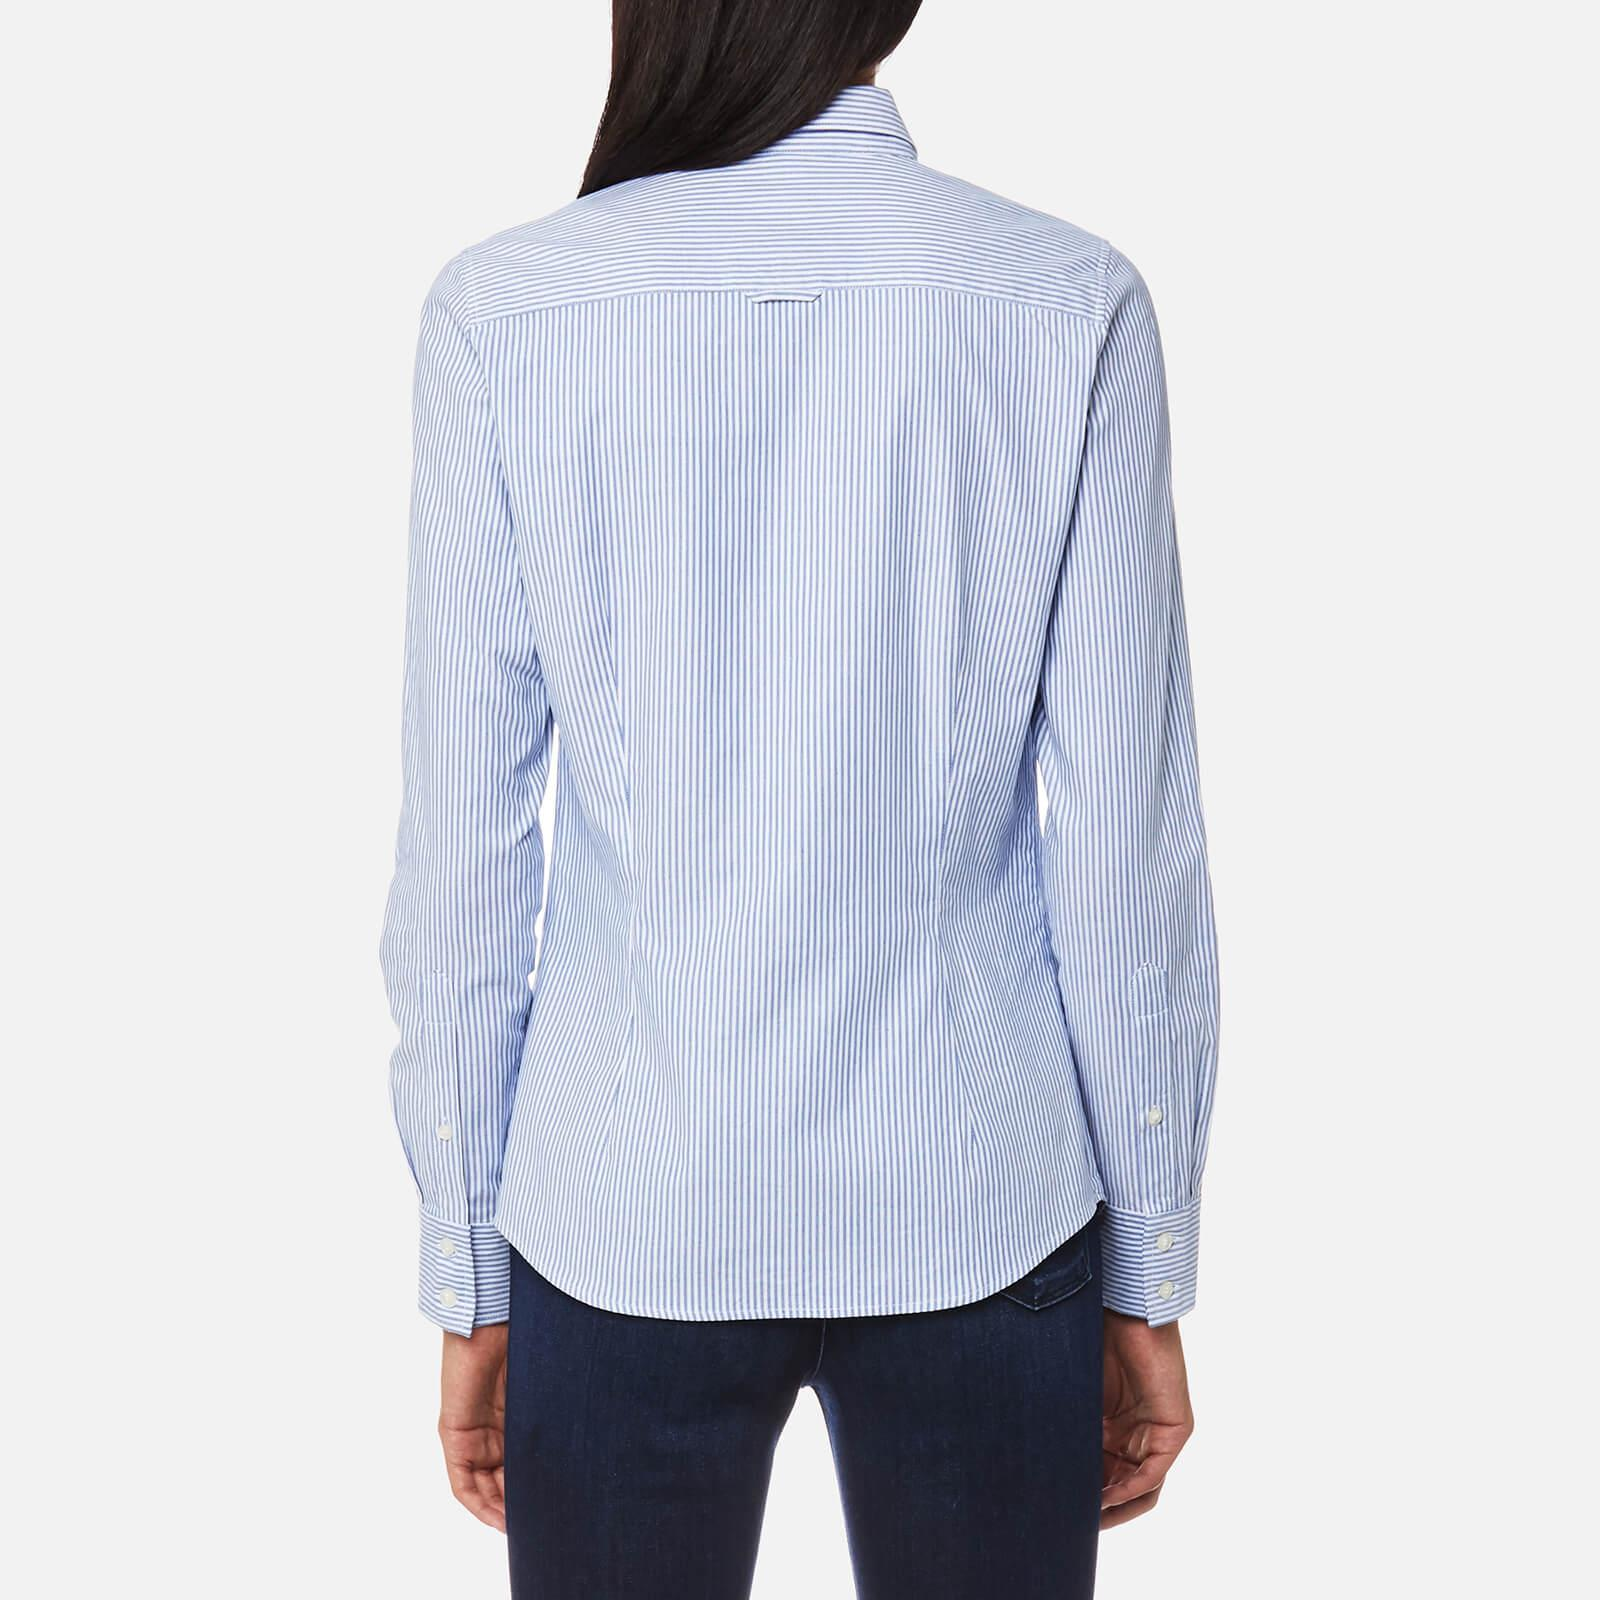 Womens Stretch Oxford Banker Shirt GANT Buy Cheap Low Price Hot Sale Cheap Price WSUle